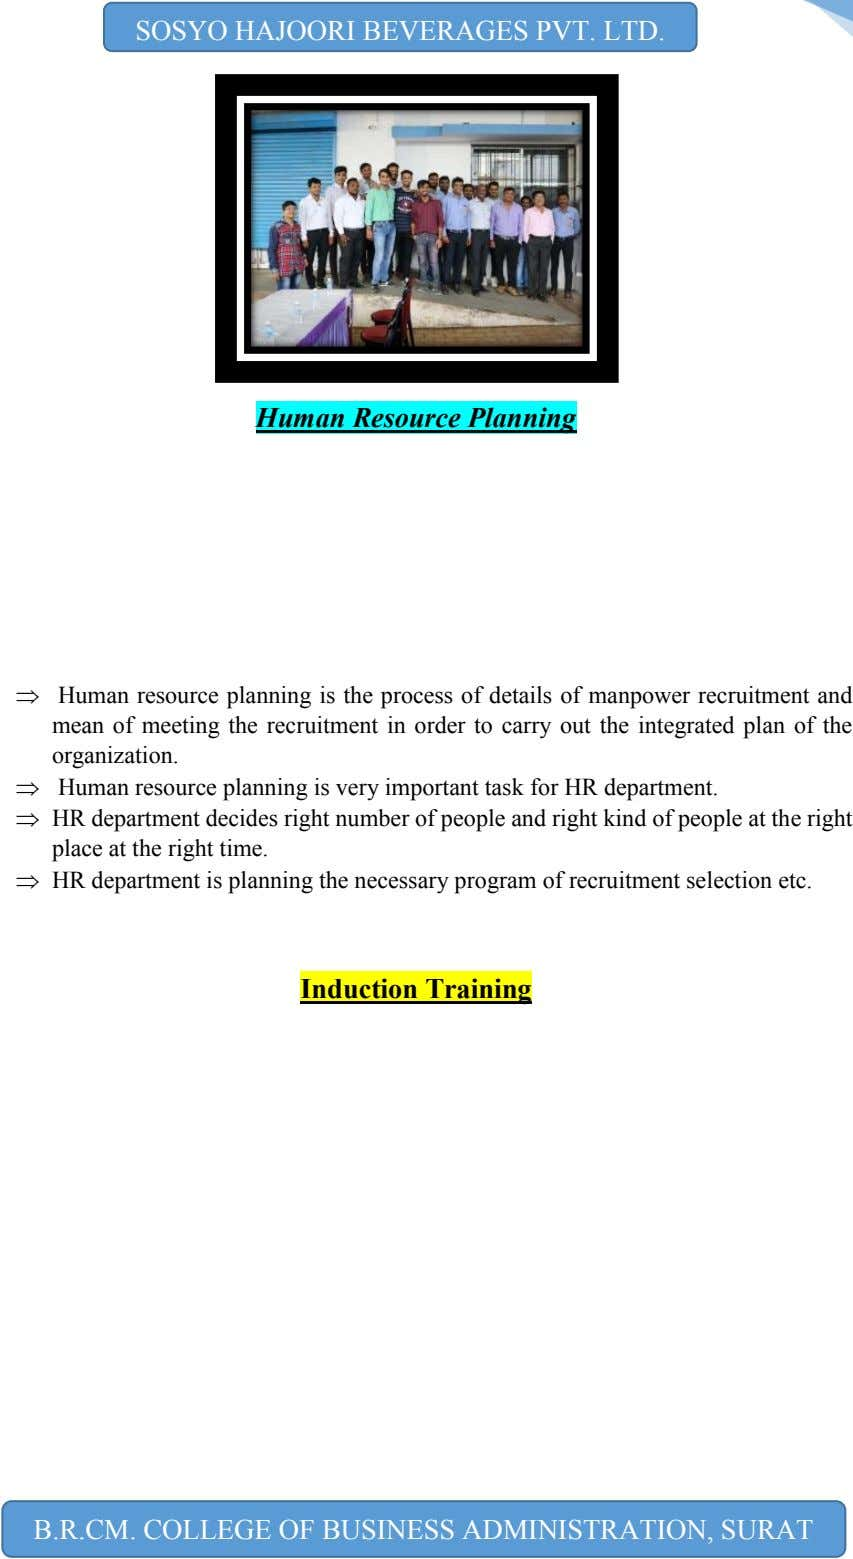 Human resource planning is the process of details of manpower recruitment and mean of meeting